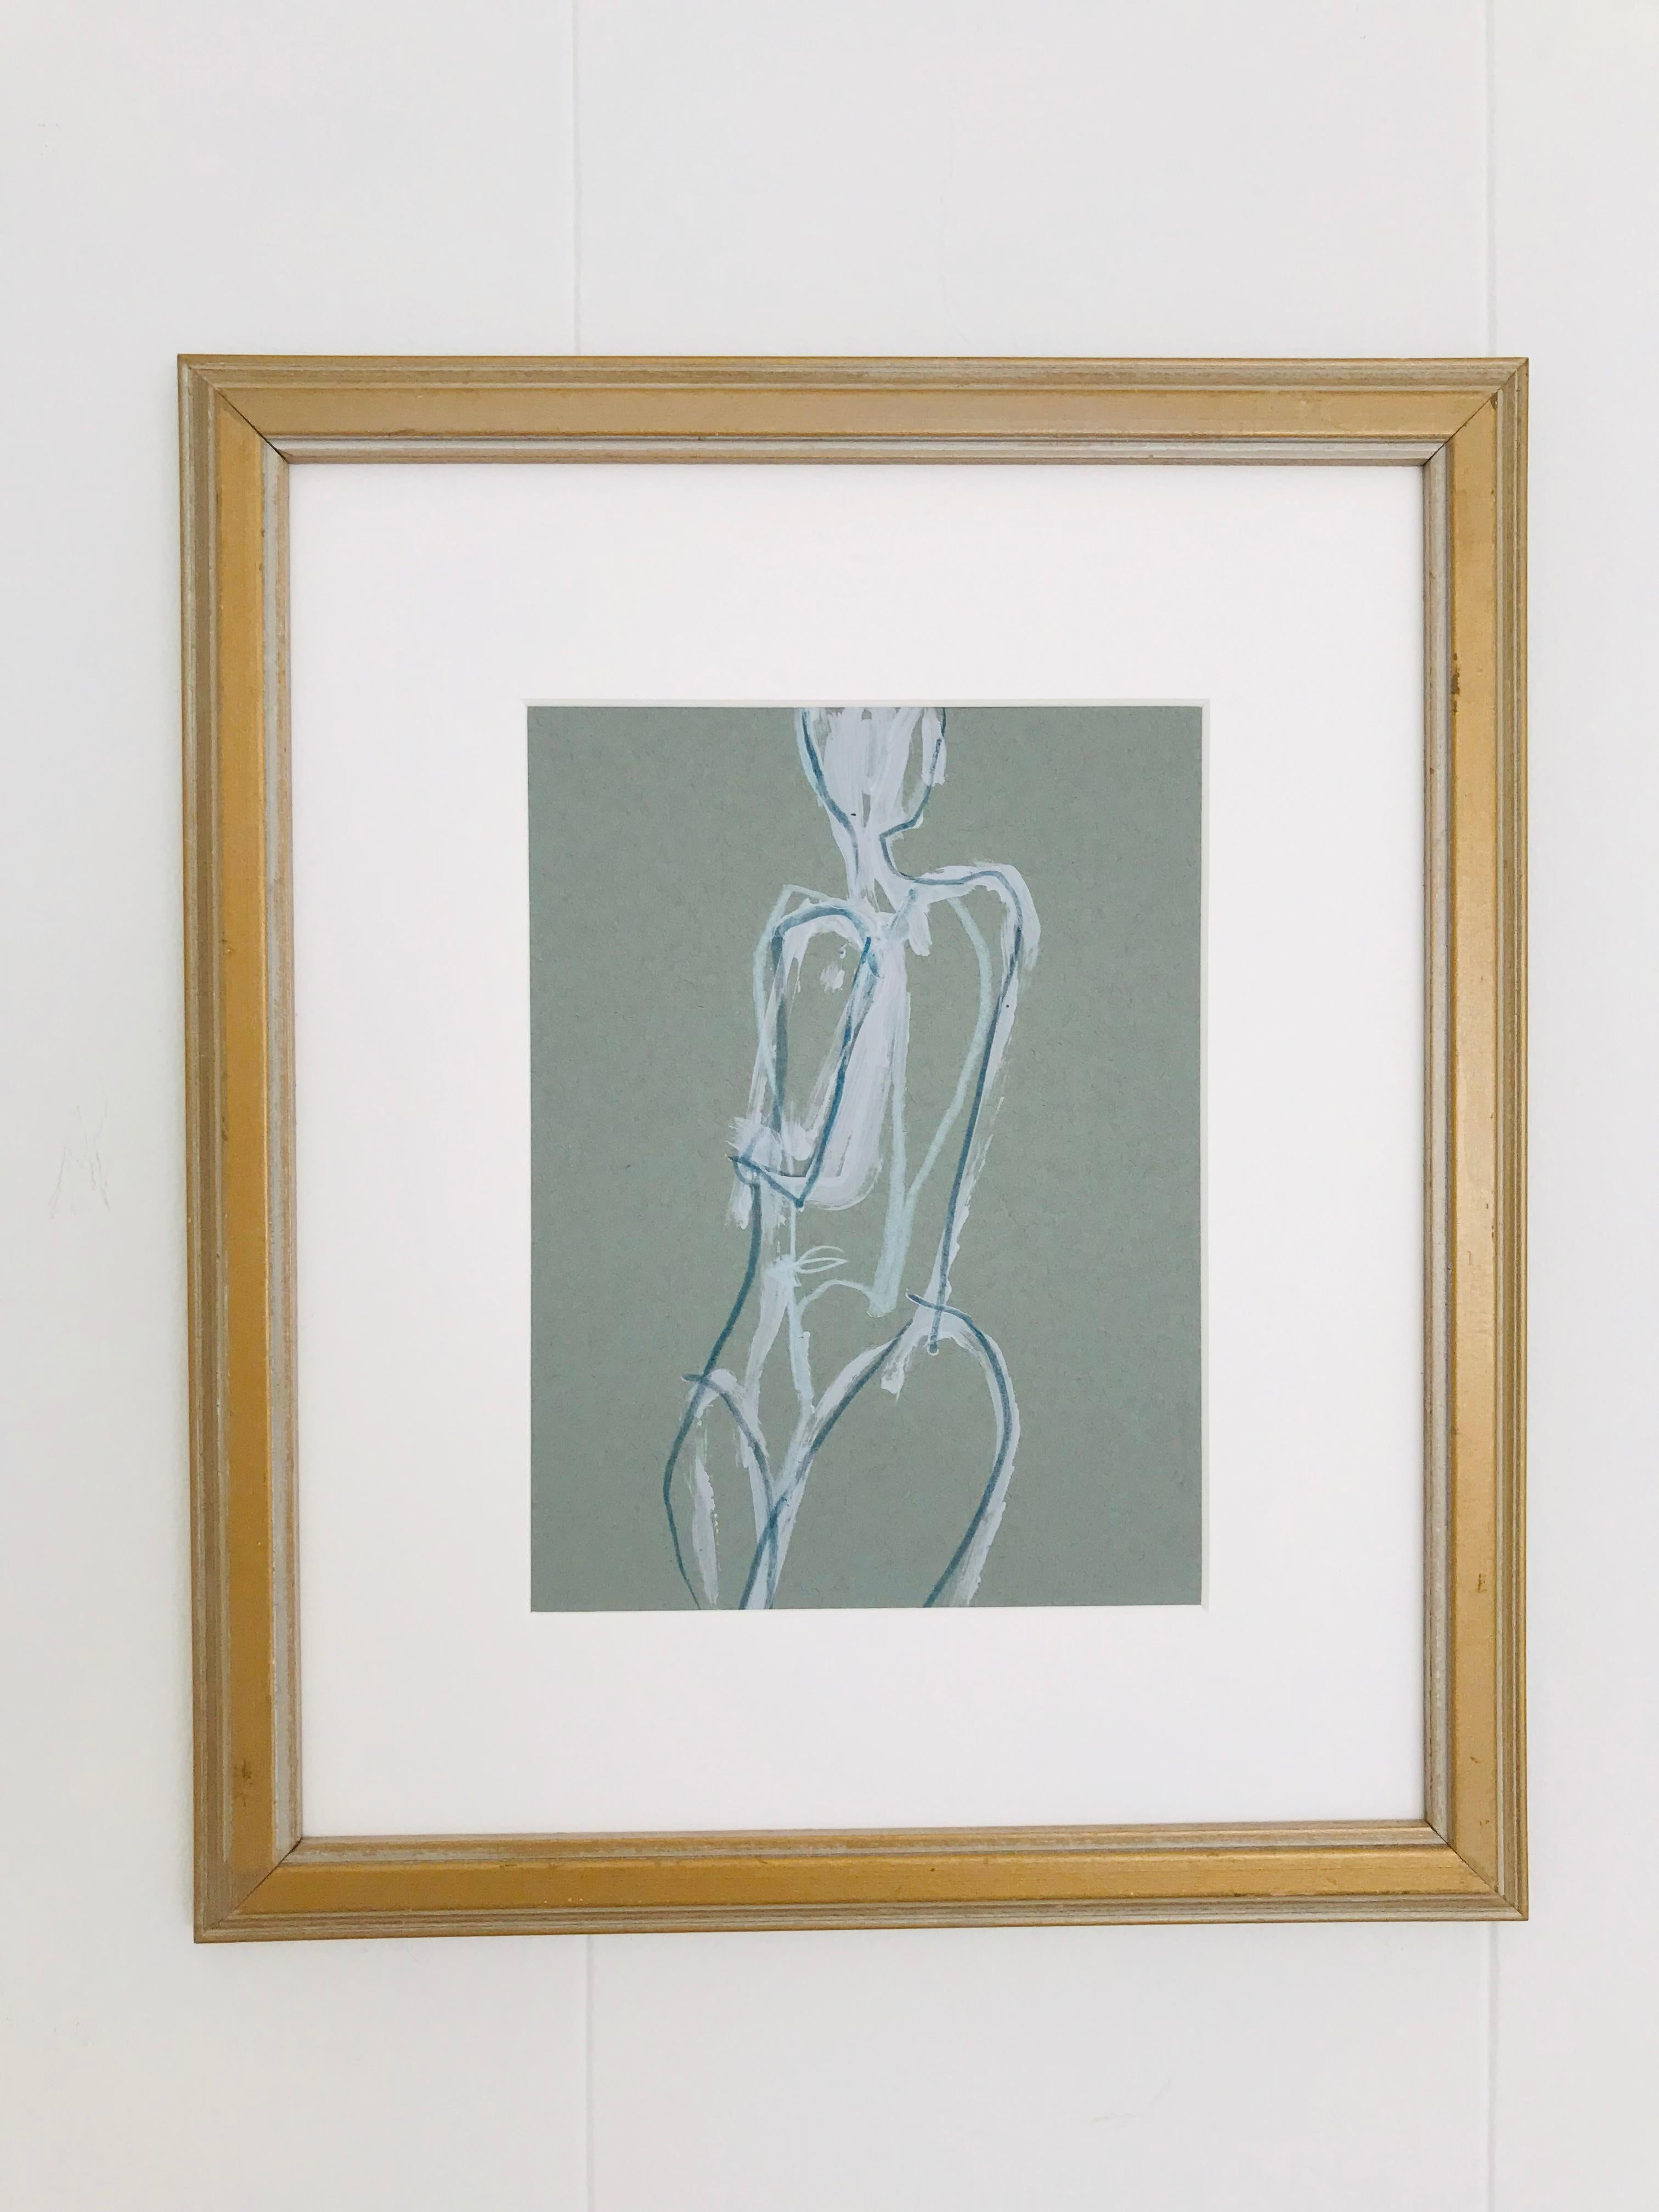 Twist, Abstract Nude, Acrylic and Mixed Media on Paper, Vintage Frame, Signed